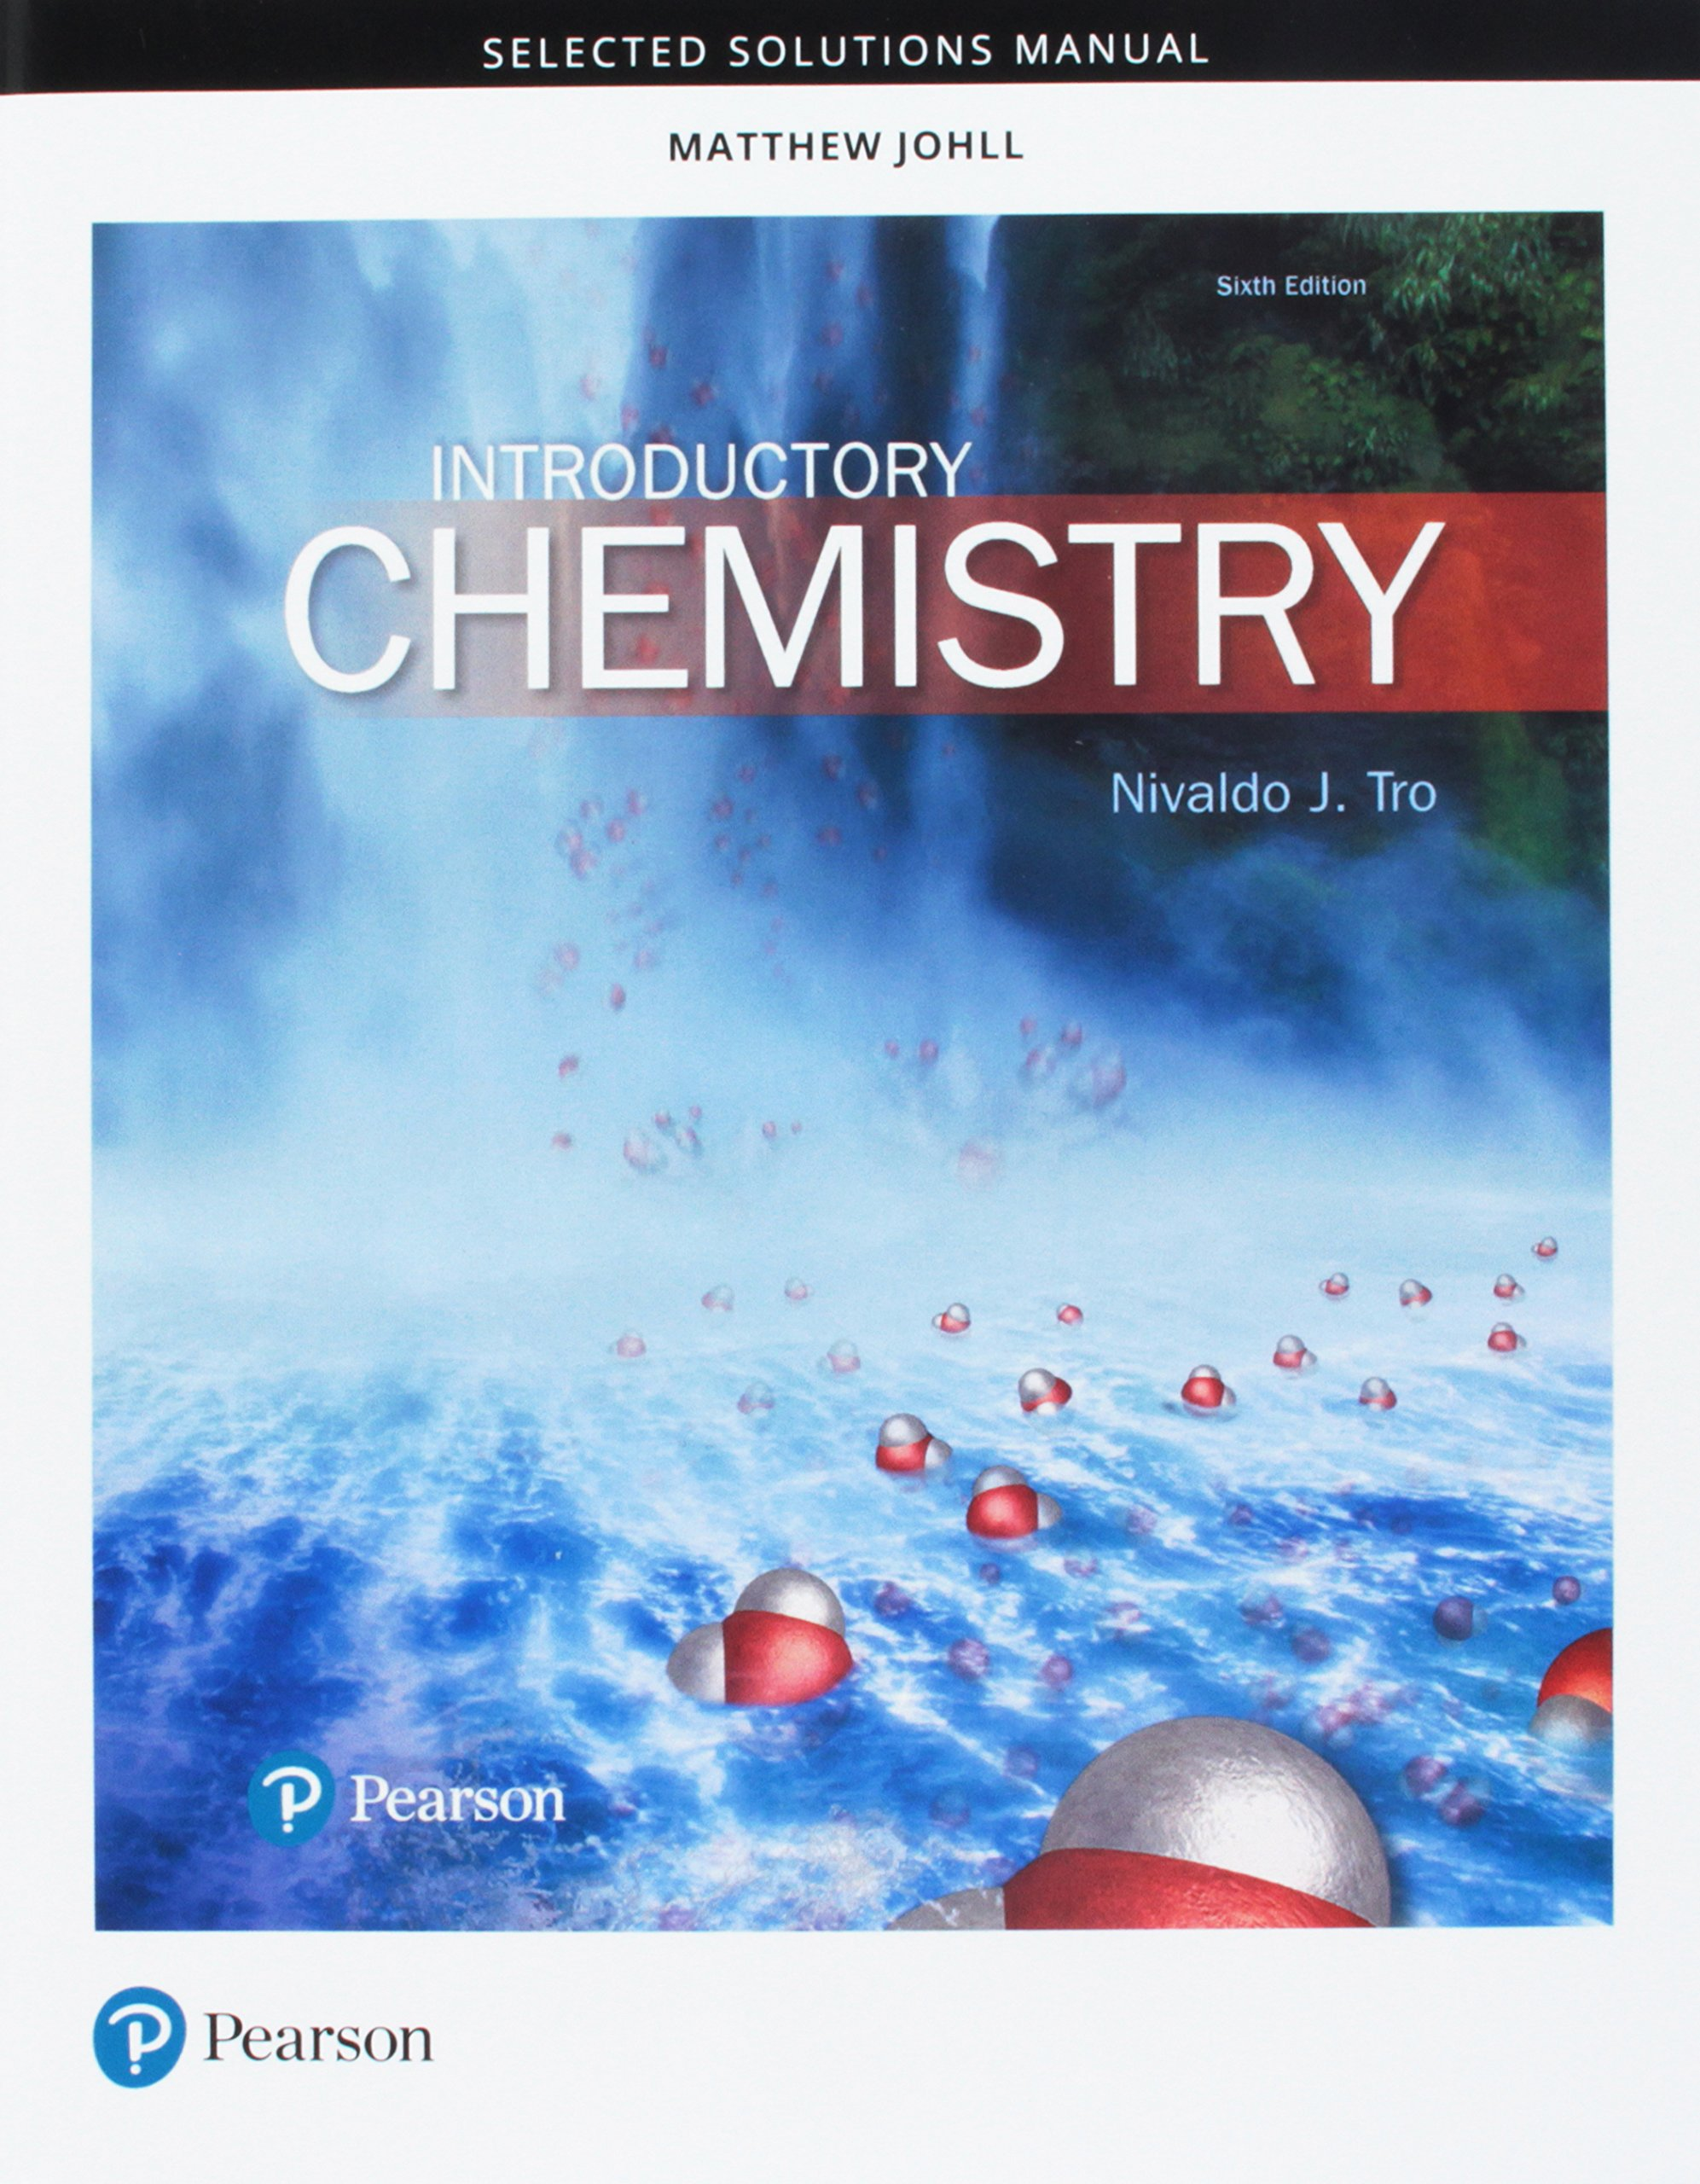 Student Selected Solutions Manual for Introductory Chemistry: Nivaldo J. Tro,  Matthew Johll: 9780134564067: Chemistry: Amazon Canada